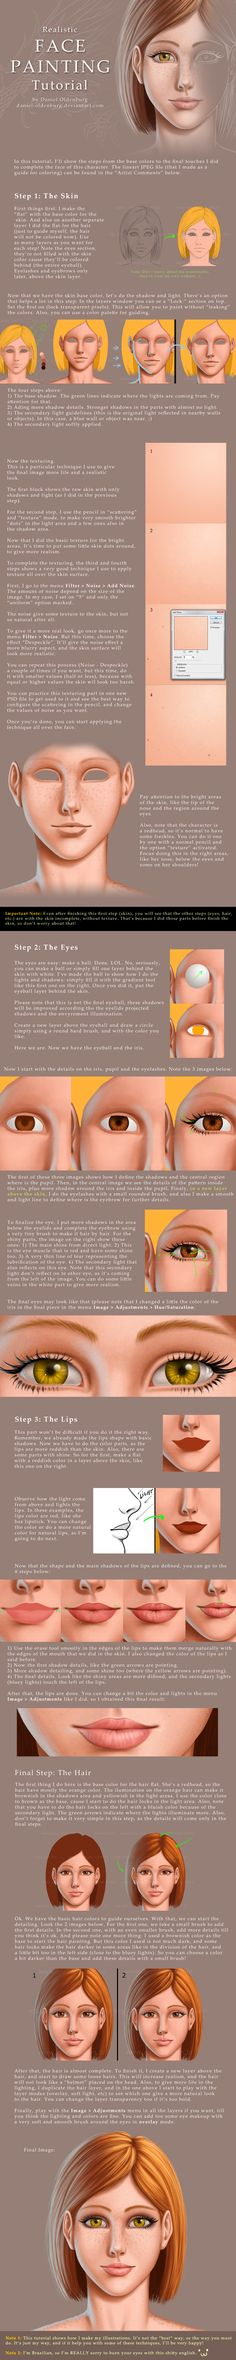 Face Painting Tutorial by ~daniel-oldenburg